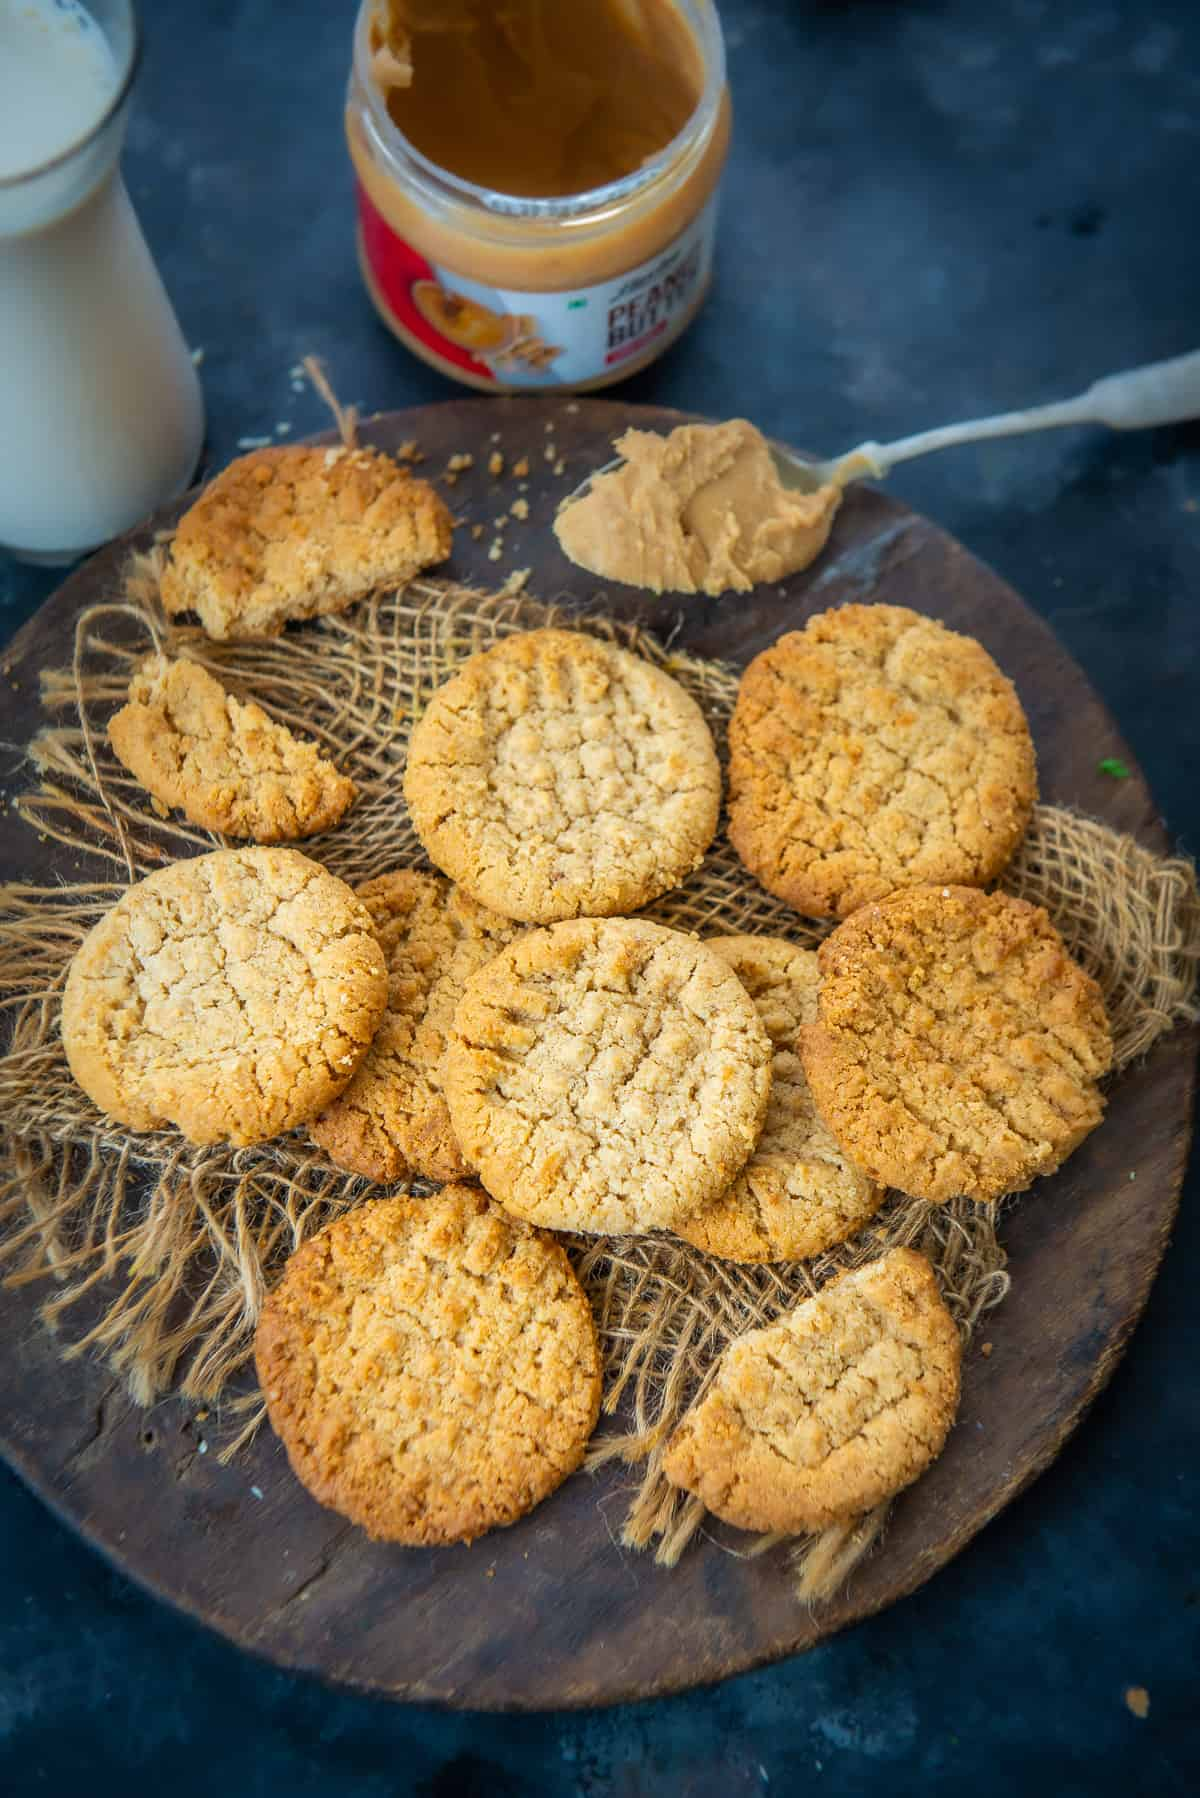 Peanut Butter Cookies served on a plate.